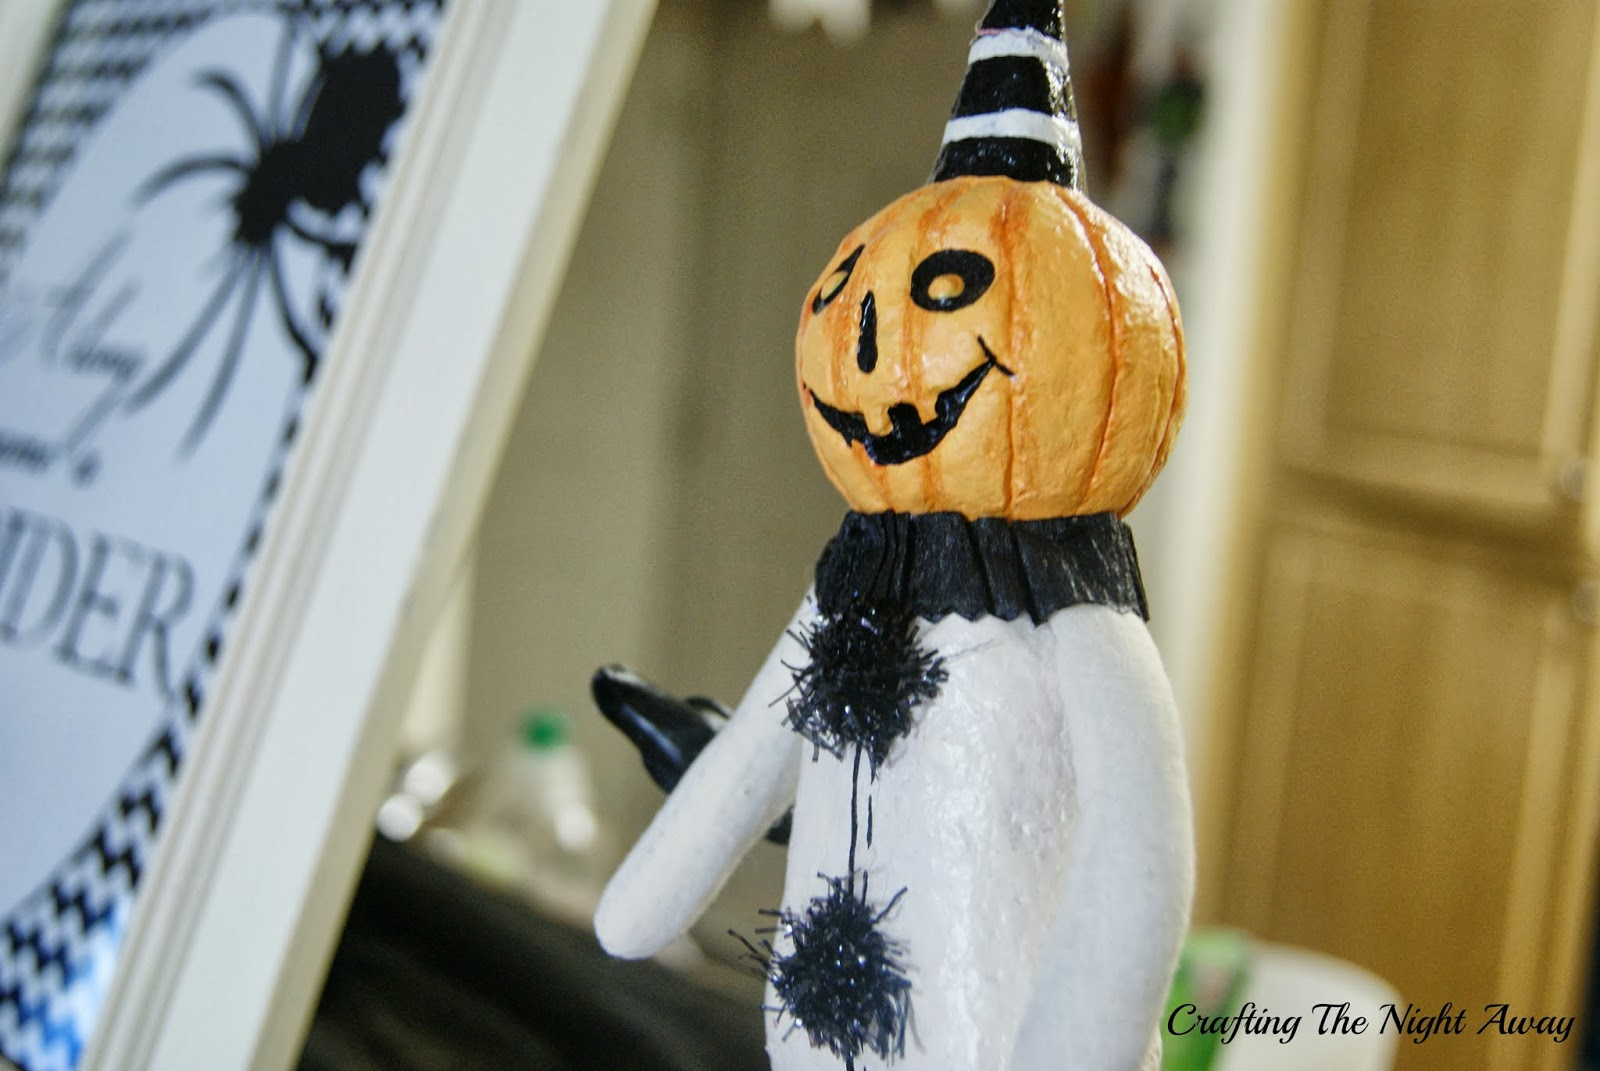 Crafting The Night Away: My Home all decked out for Halloween